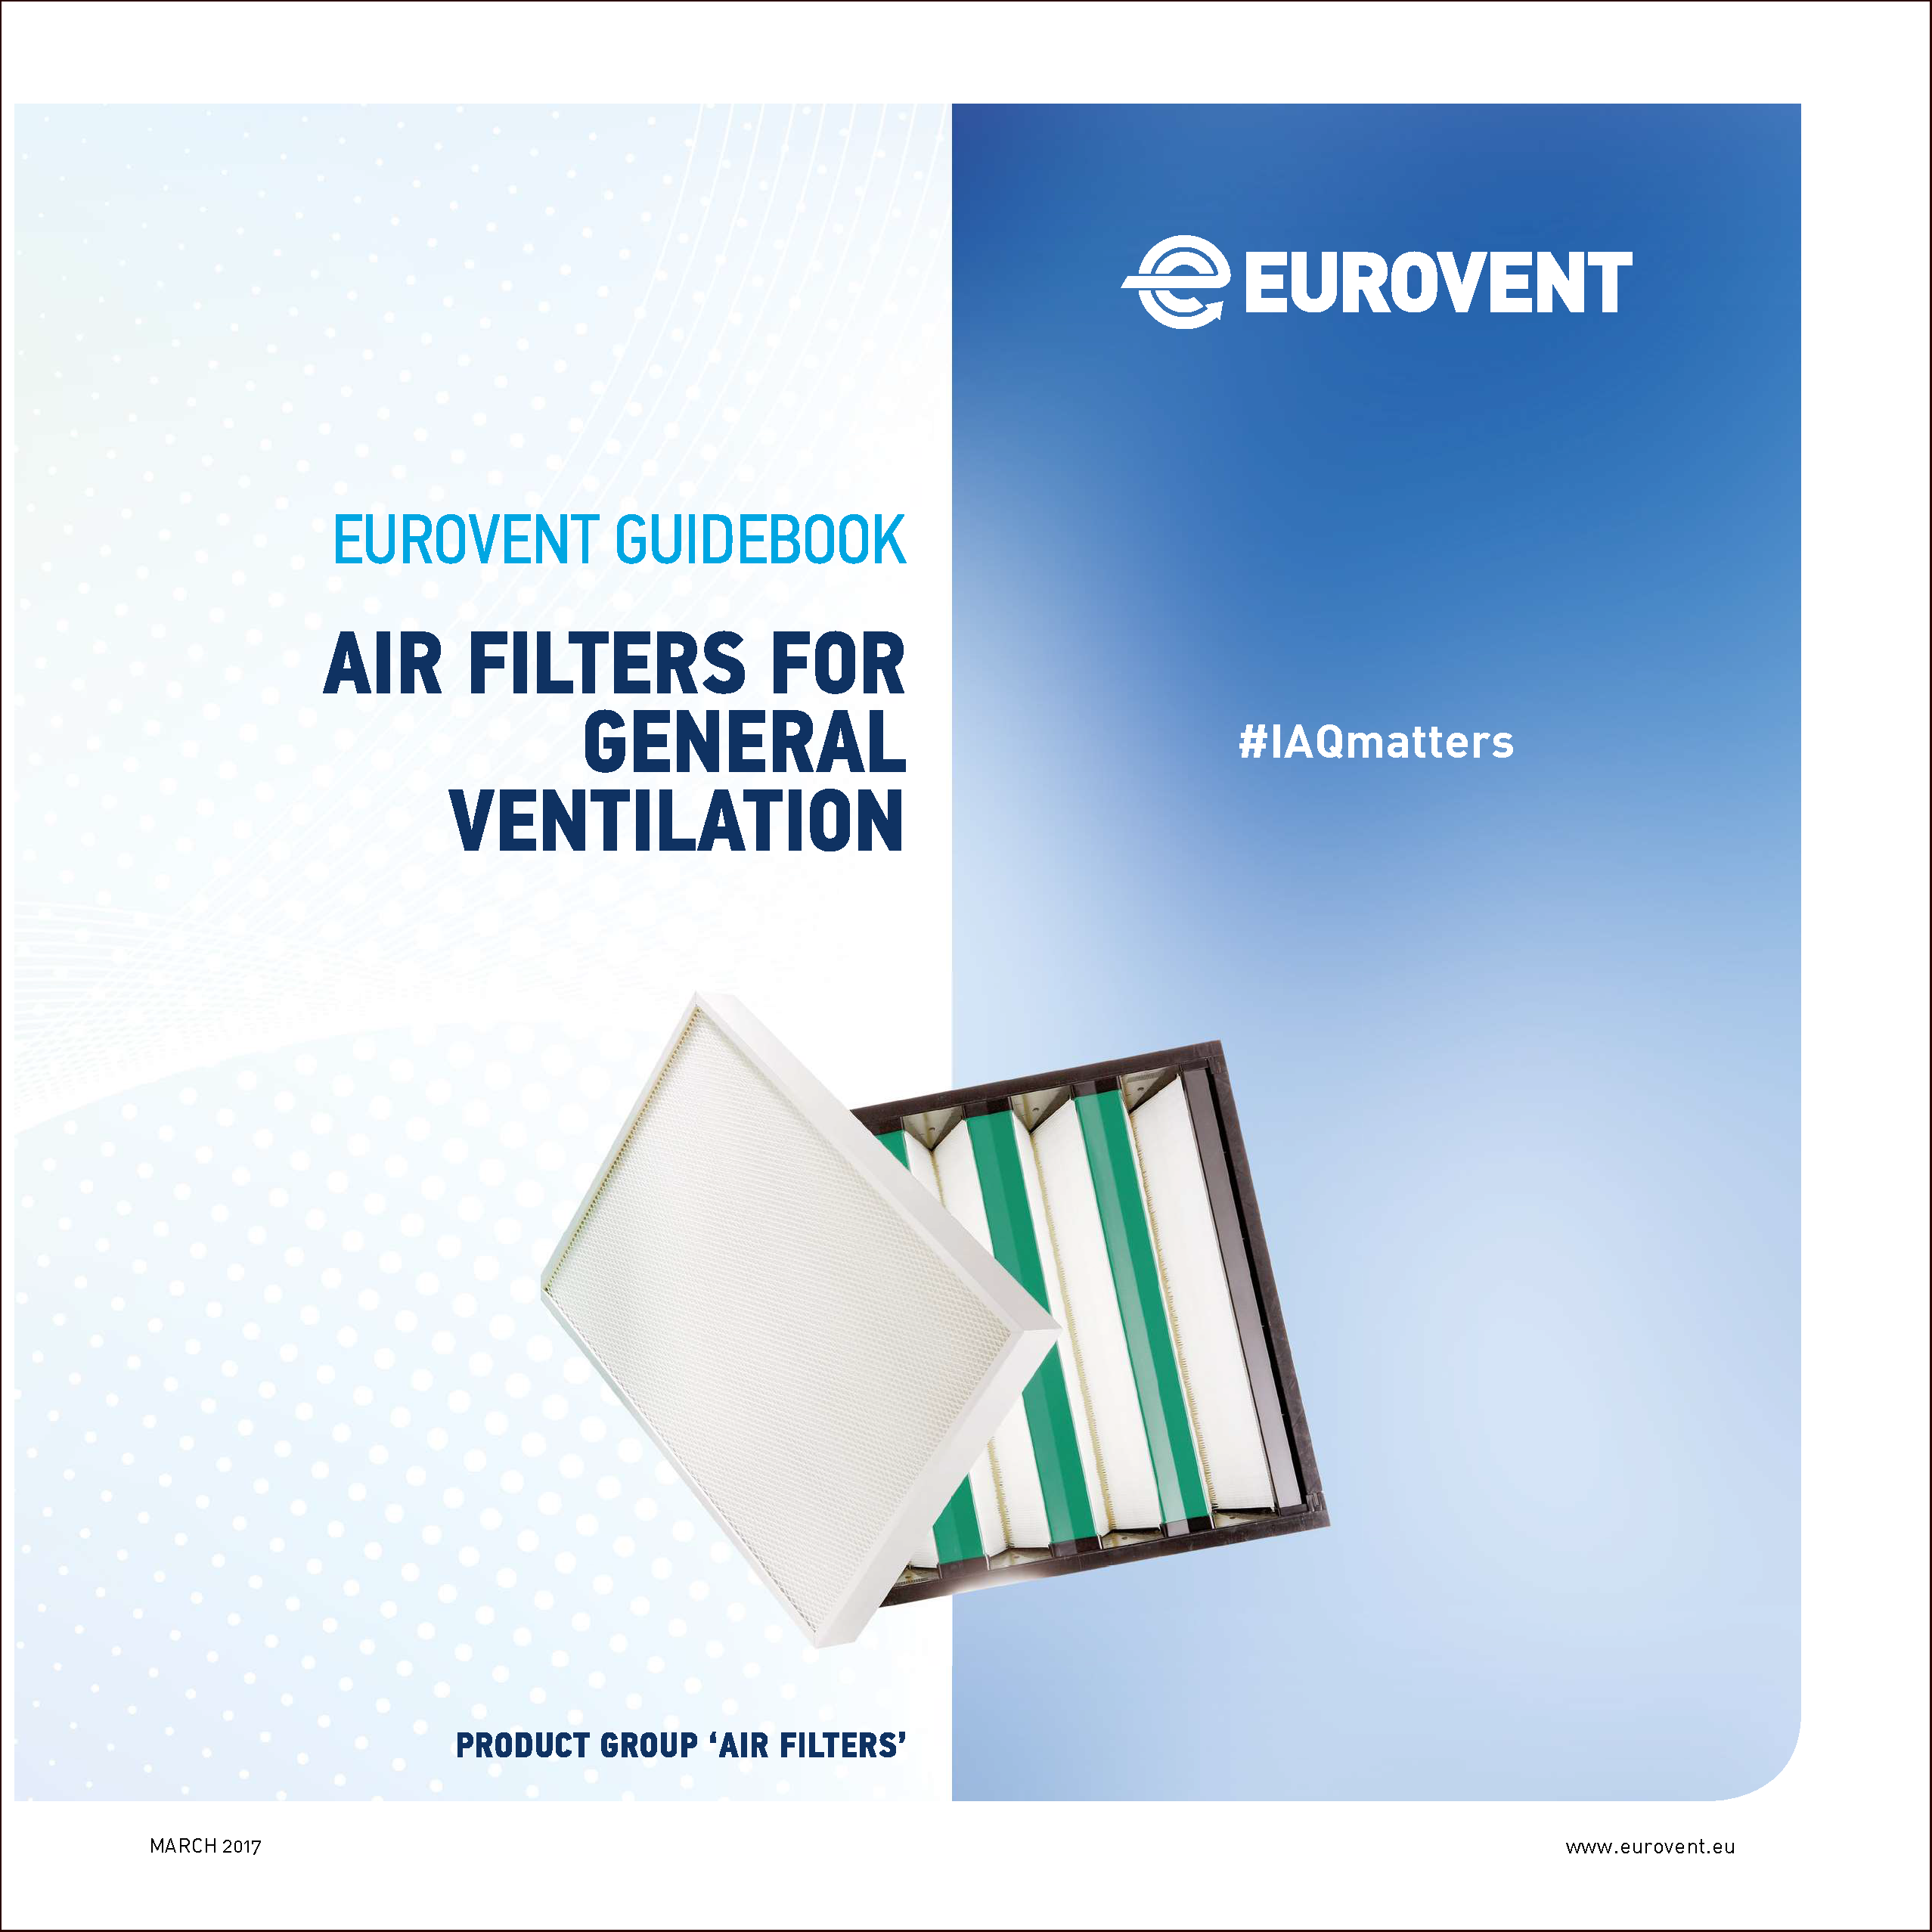 Eurovent Air Filter Guidebook - First edition